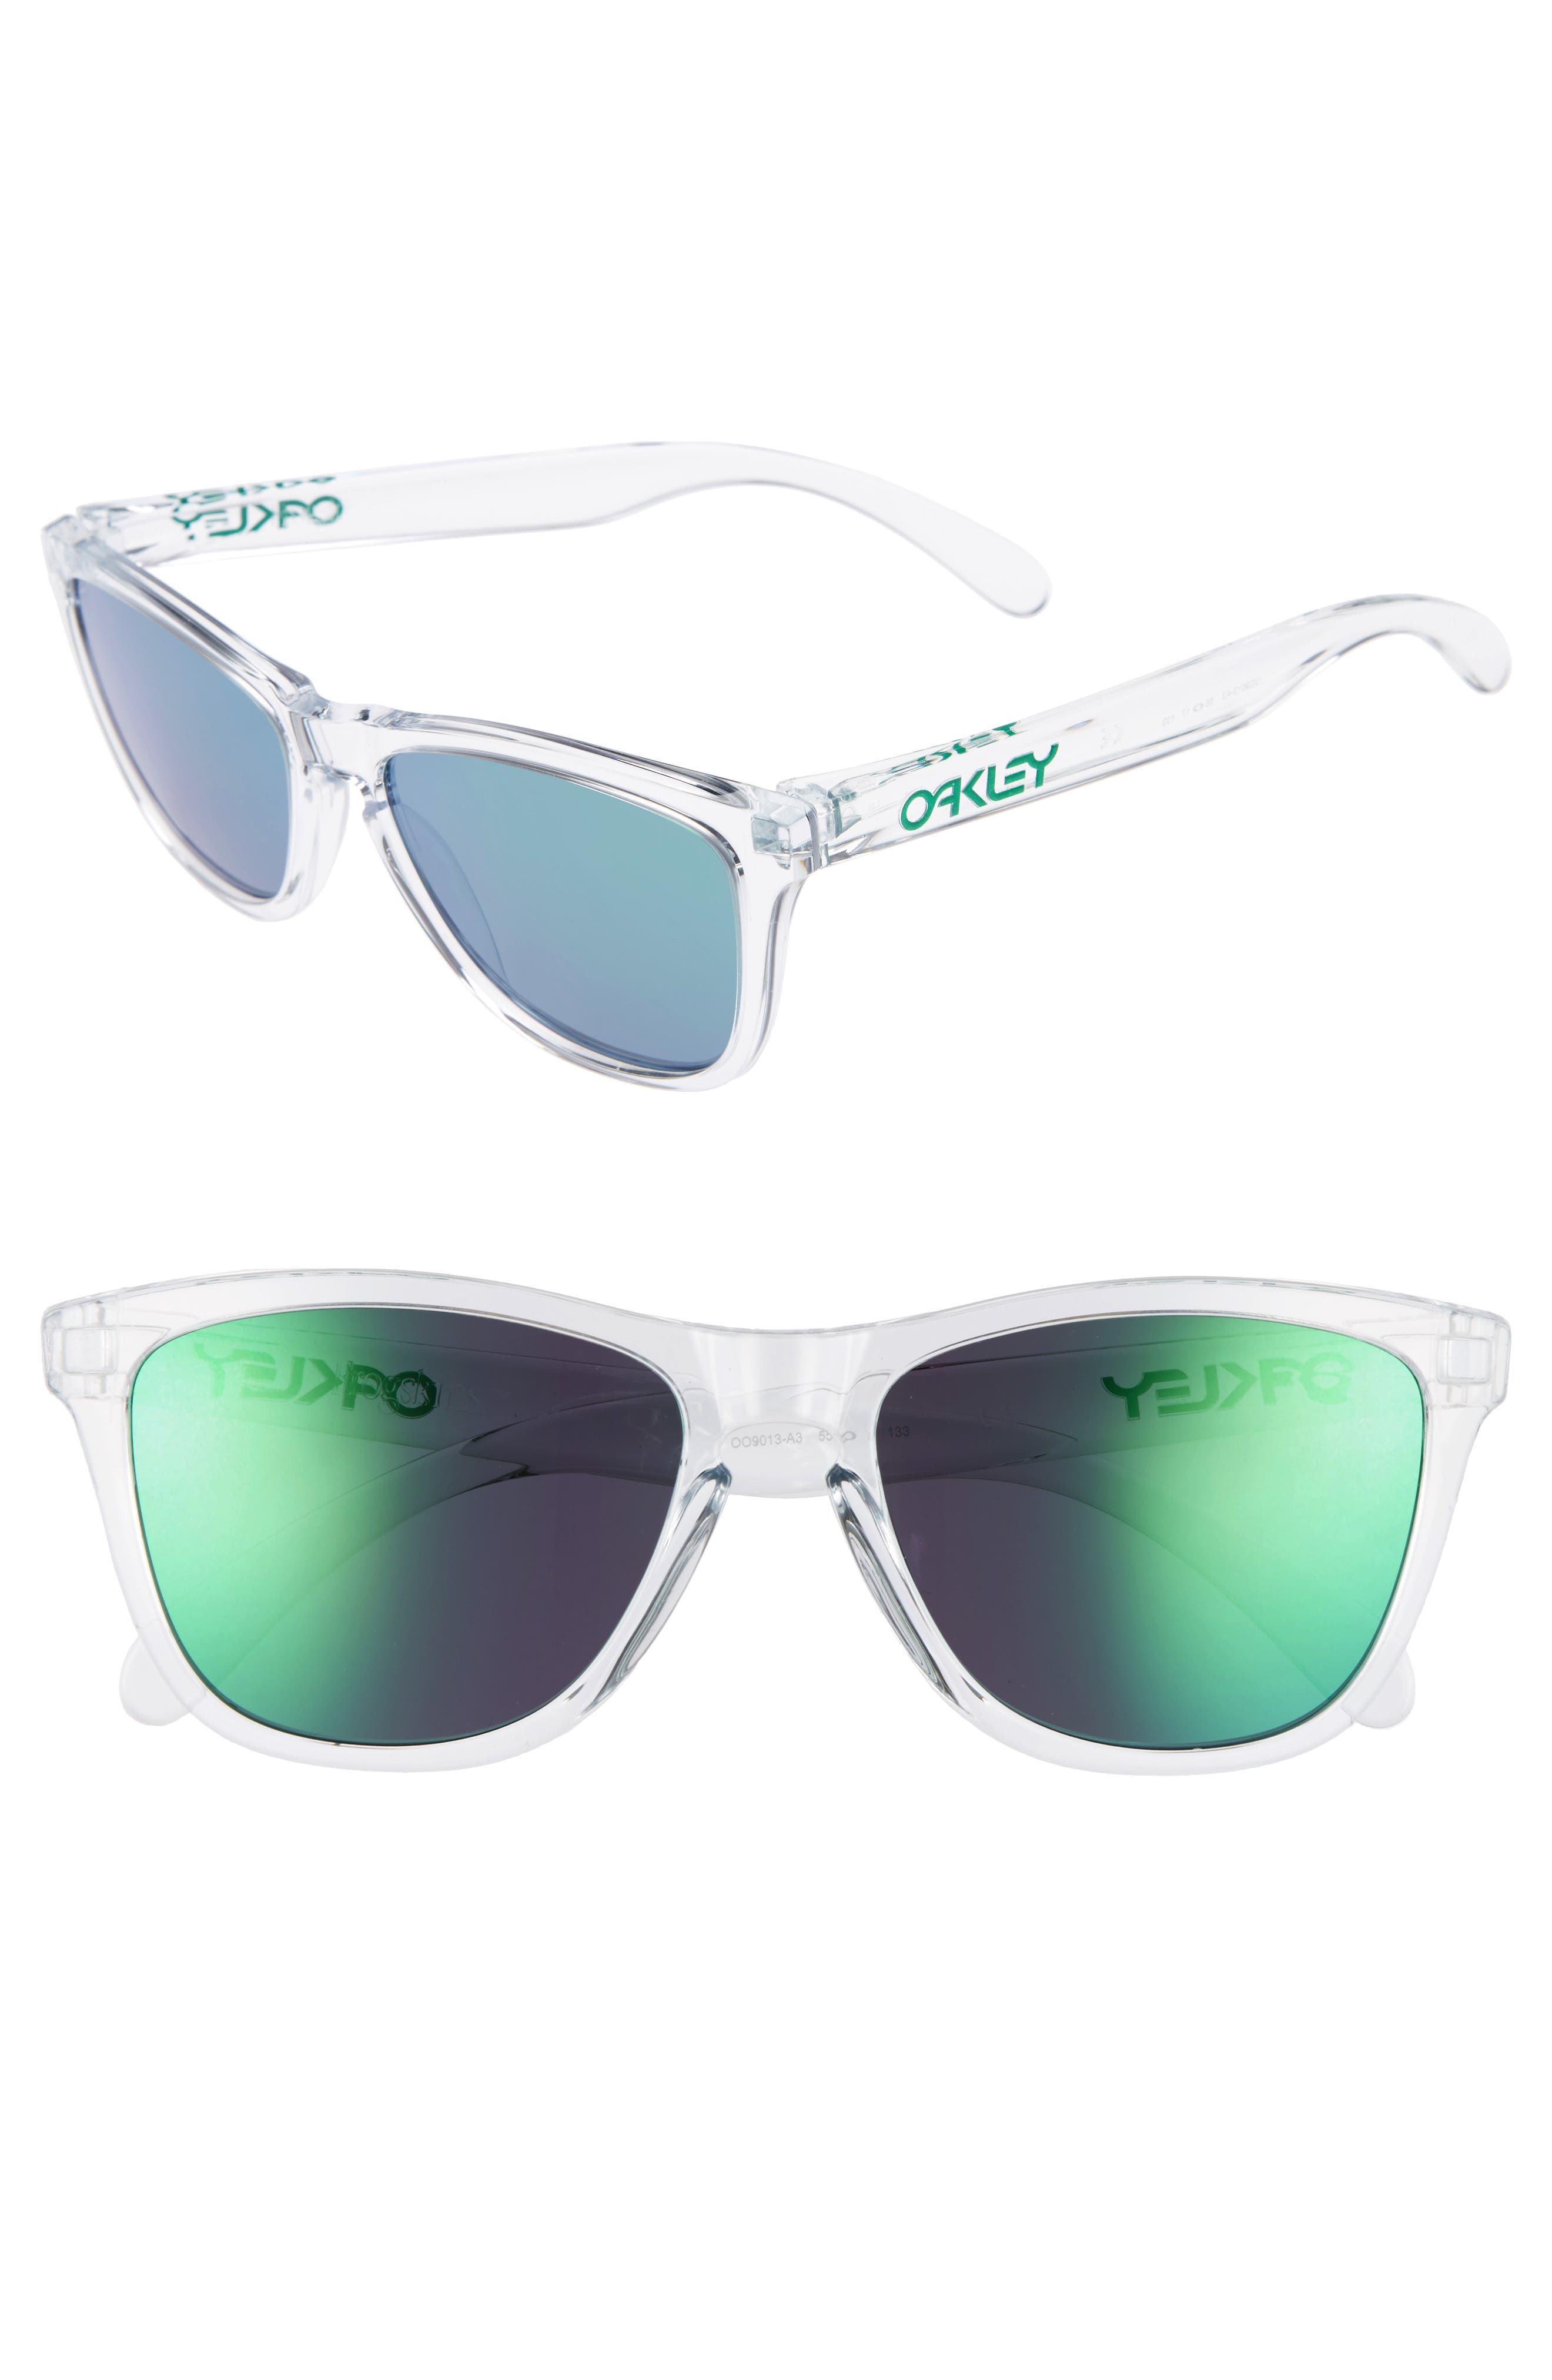 Frogskins<sup>®</sup> 55mm Sunglasses,                         Main,                         color, Jade Iridescent